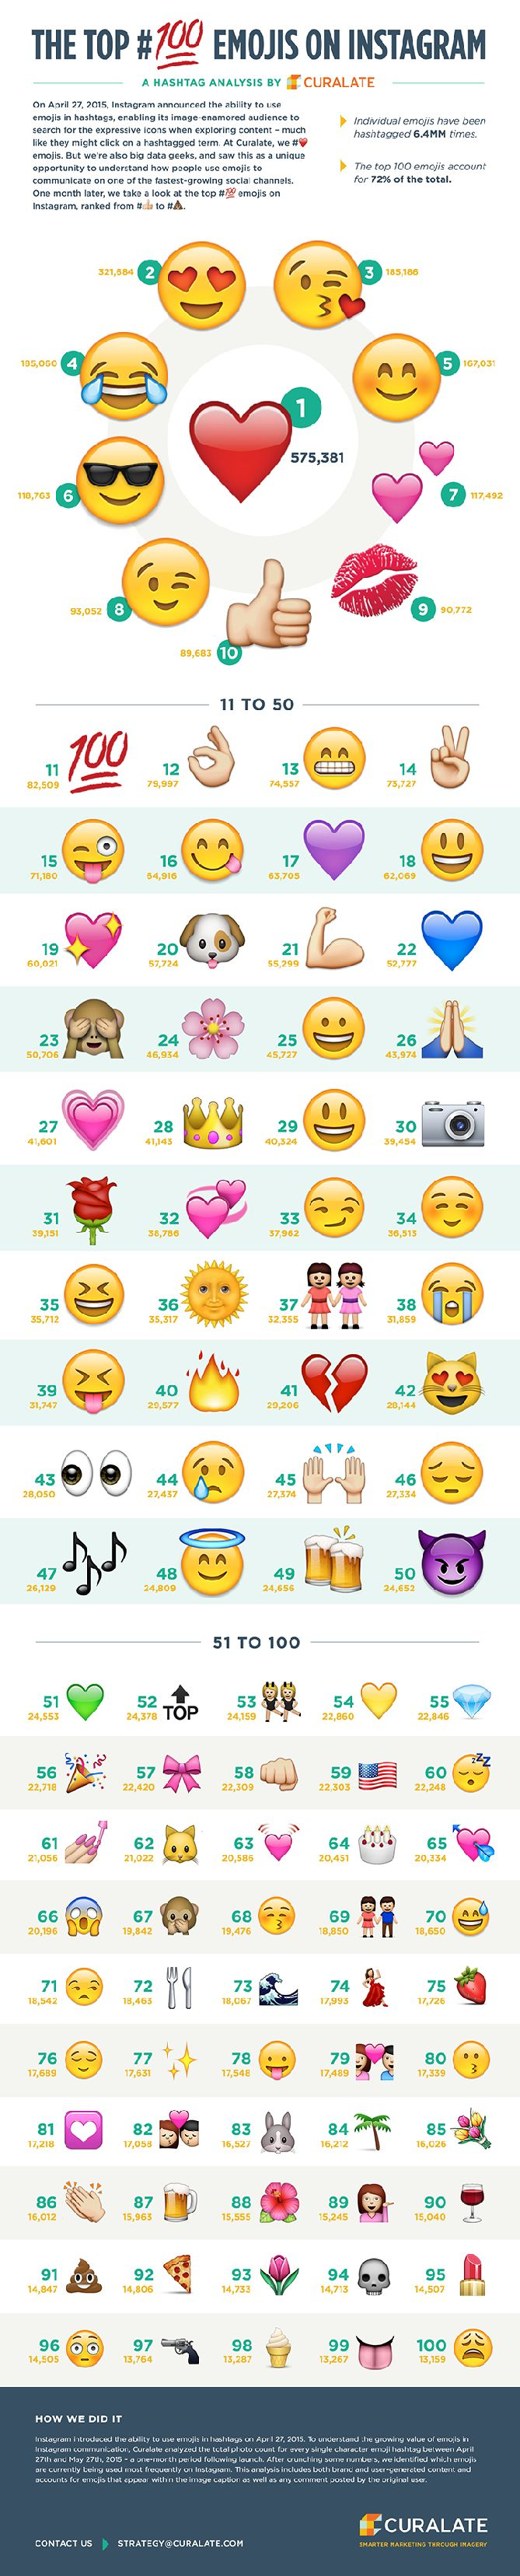 the top 100 emojis on instagram